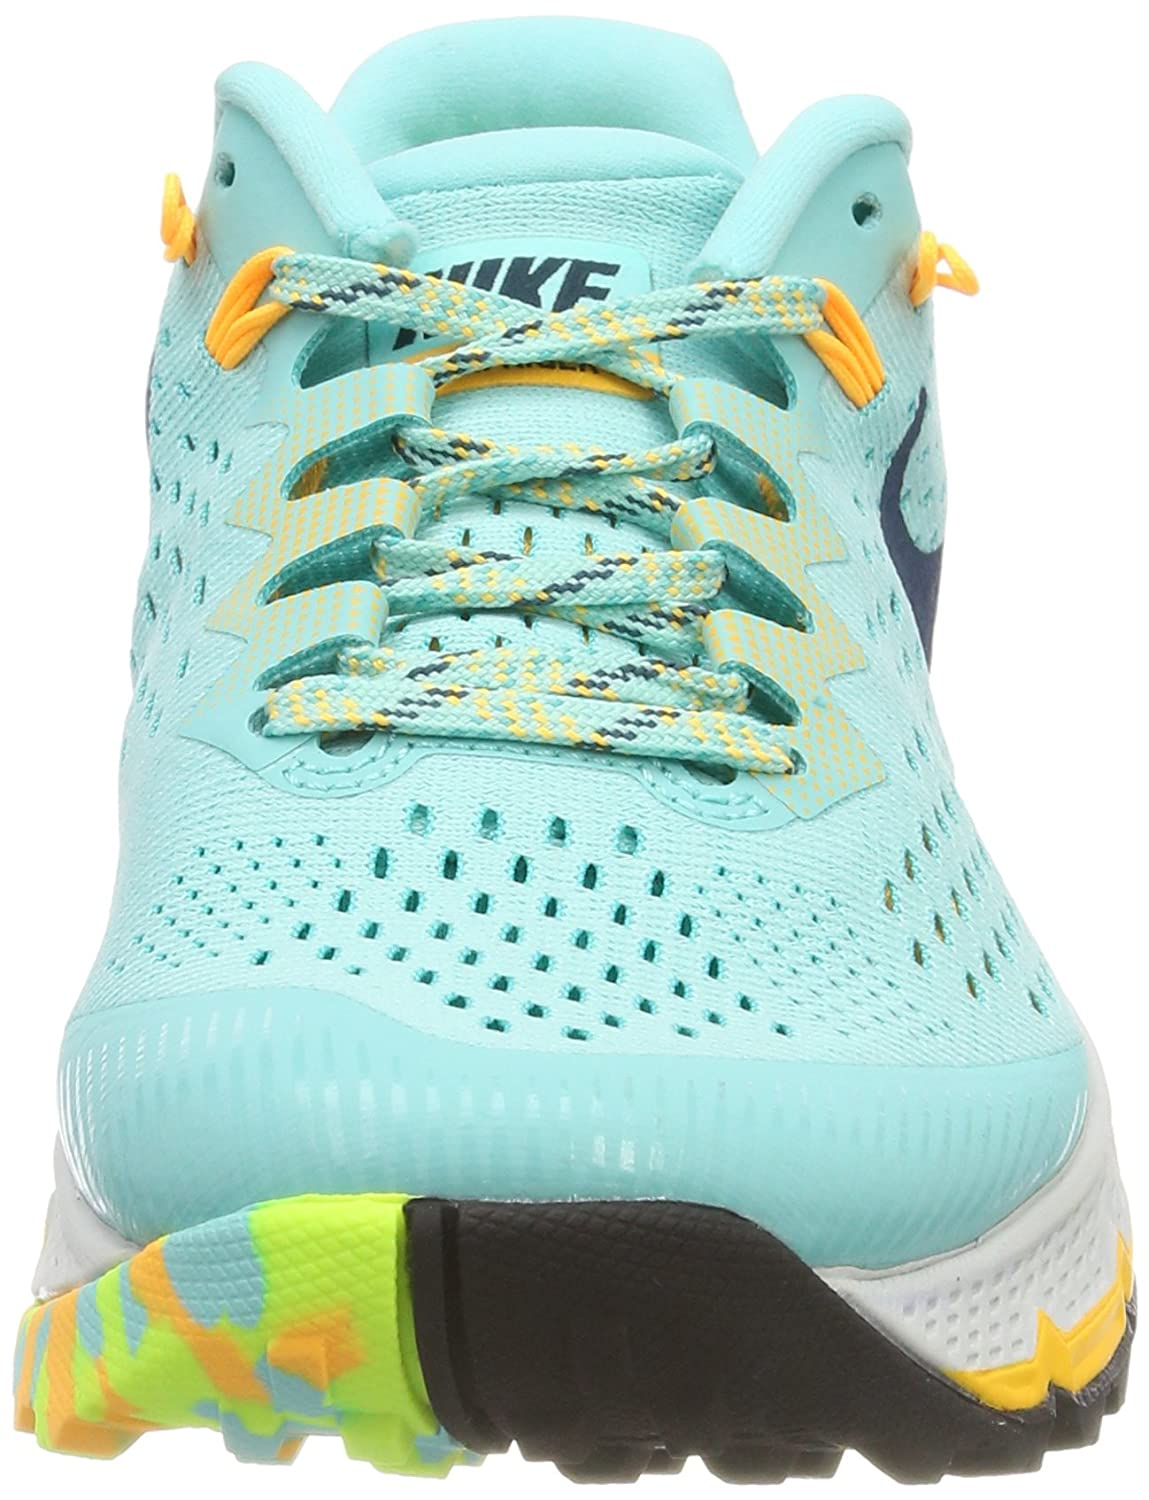 online store d7927 86395 Nike Women s W Air Zoom Terra Kiger 4 Running Shoes  Amazon.co.uk  Shoes    Bags